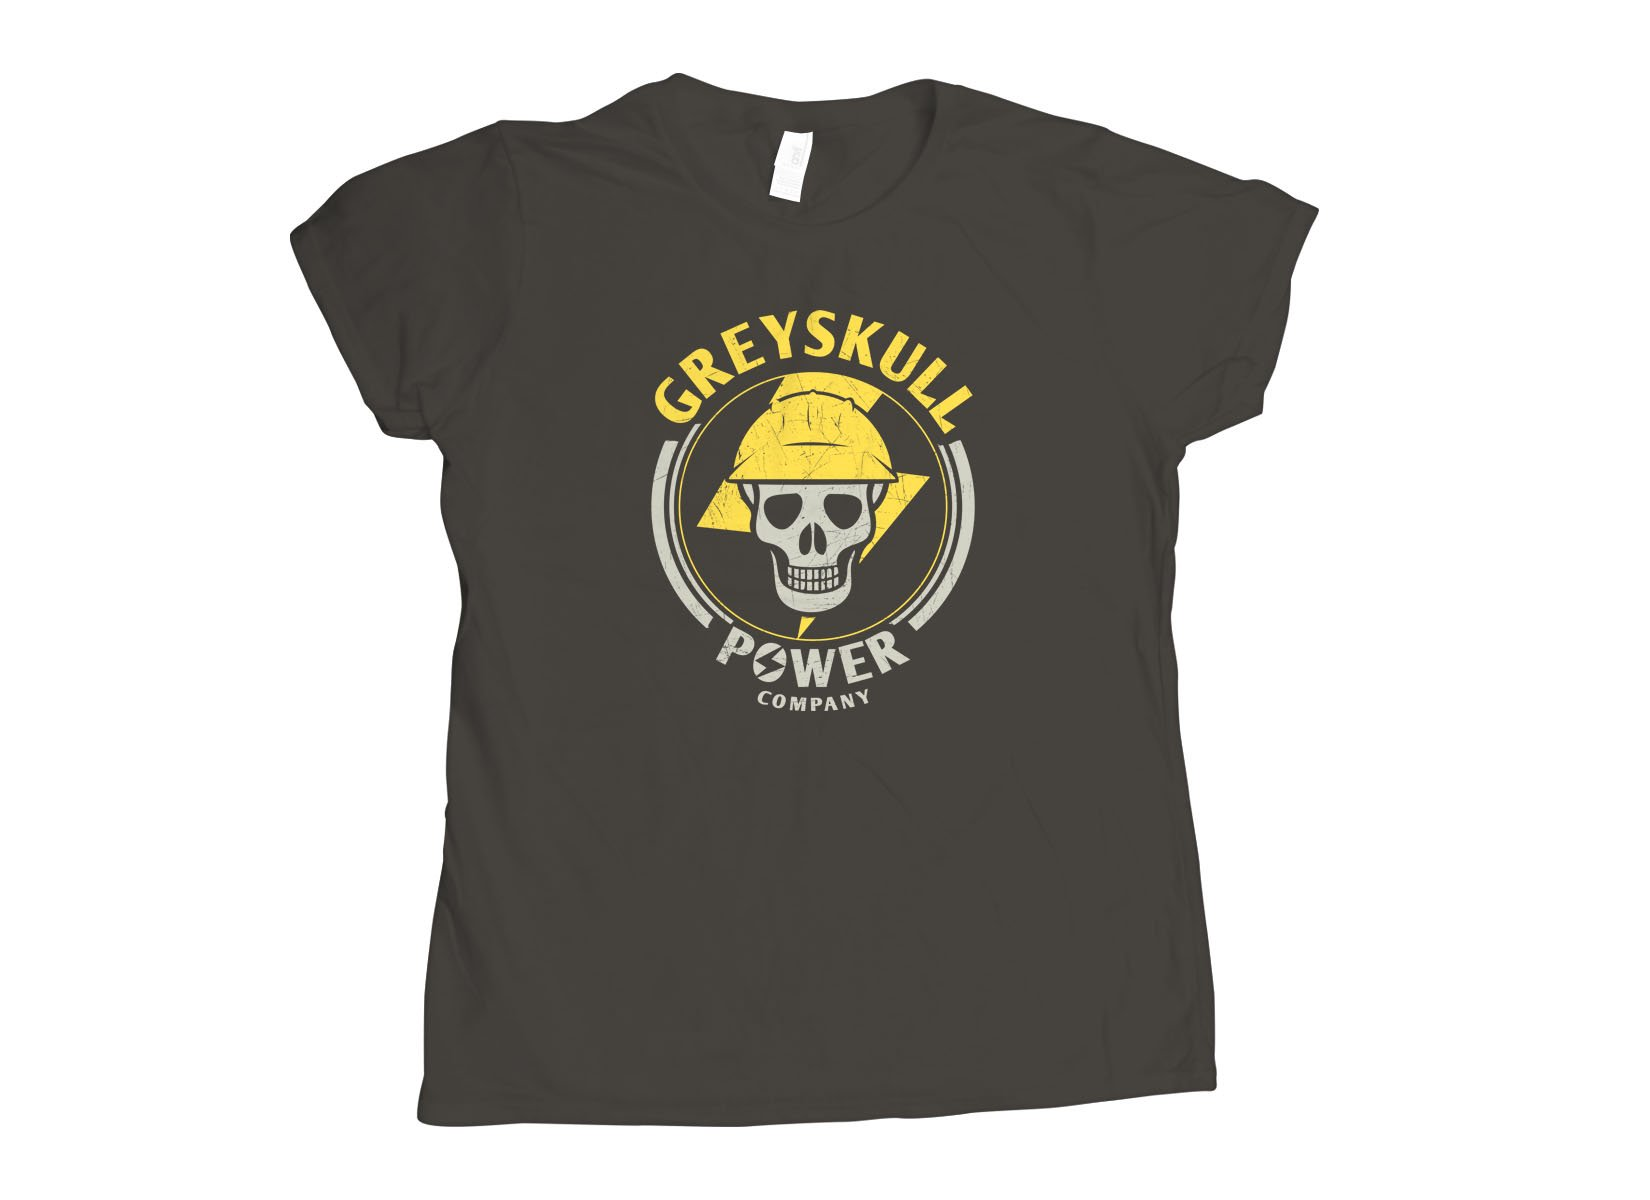 Greyskull Power Company on Womens T-Shirt